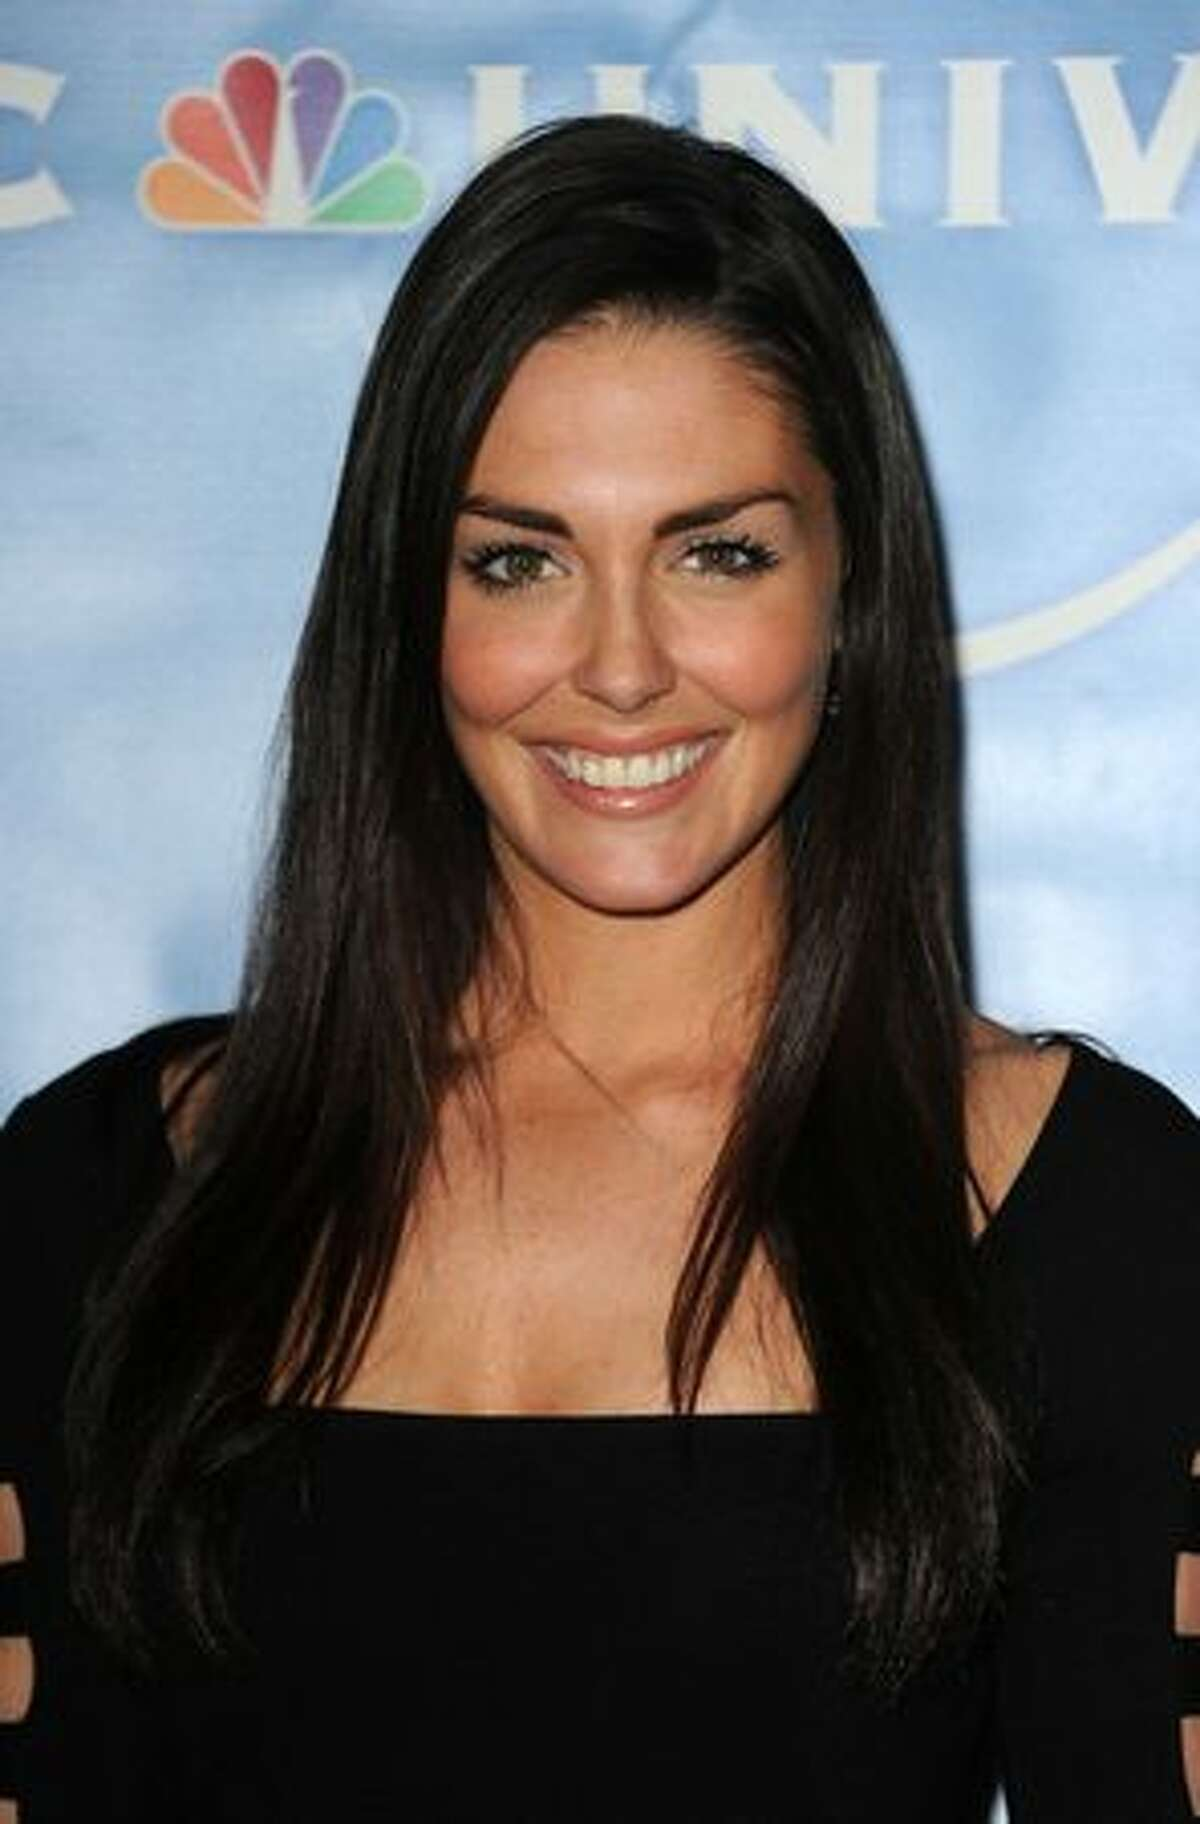 Actress Taylor Cole arrives at the NBC Universal 2011 Winter TCA Press Tour All-Star Party at the Langham Huntington Hotel in Pasadena, California.